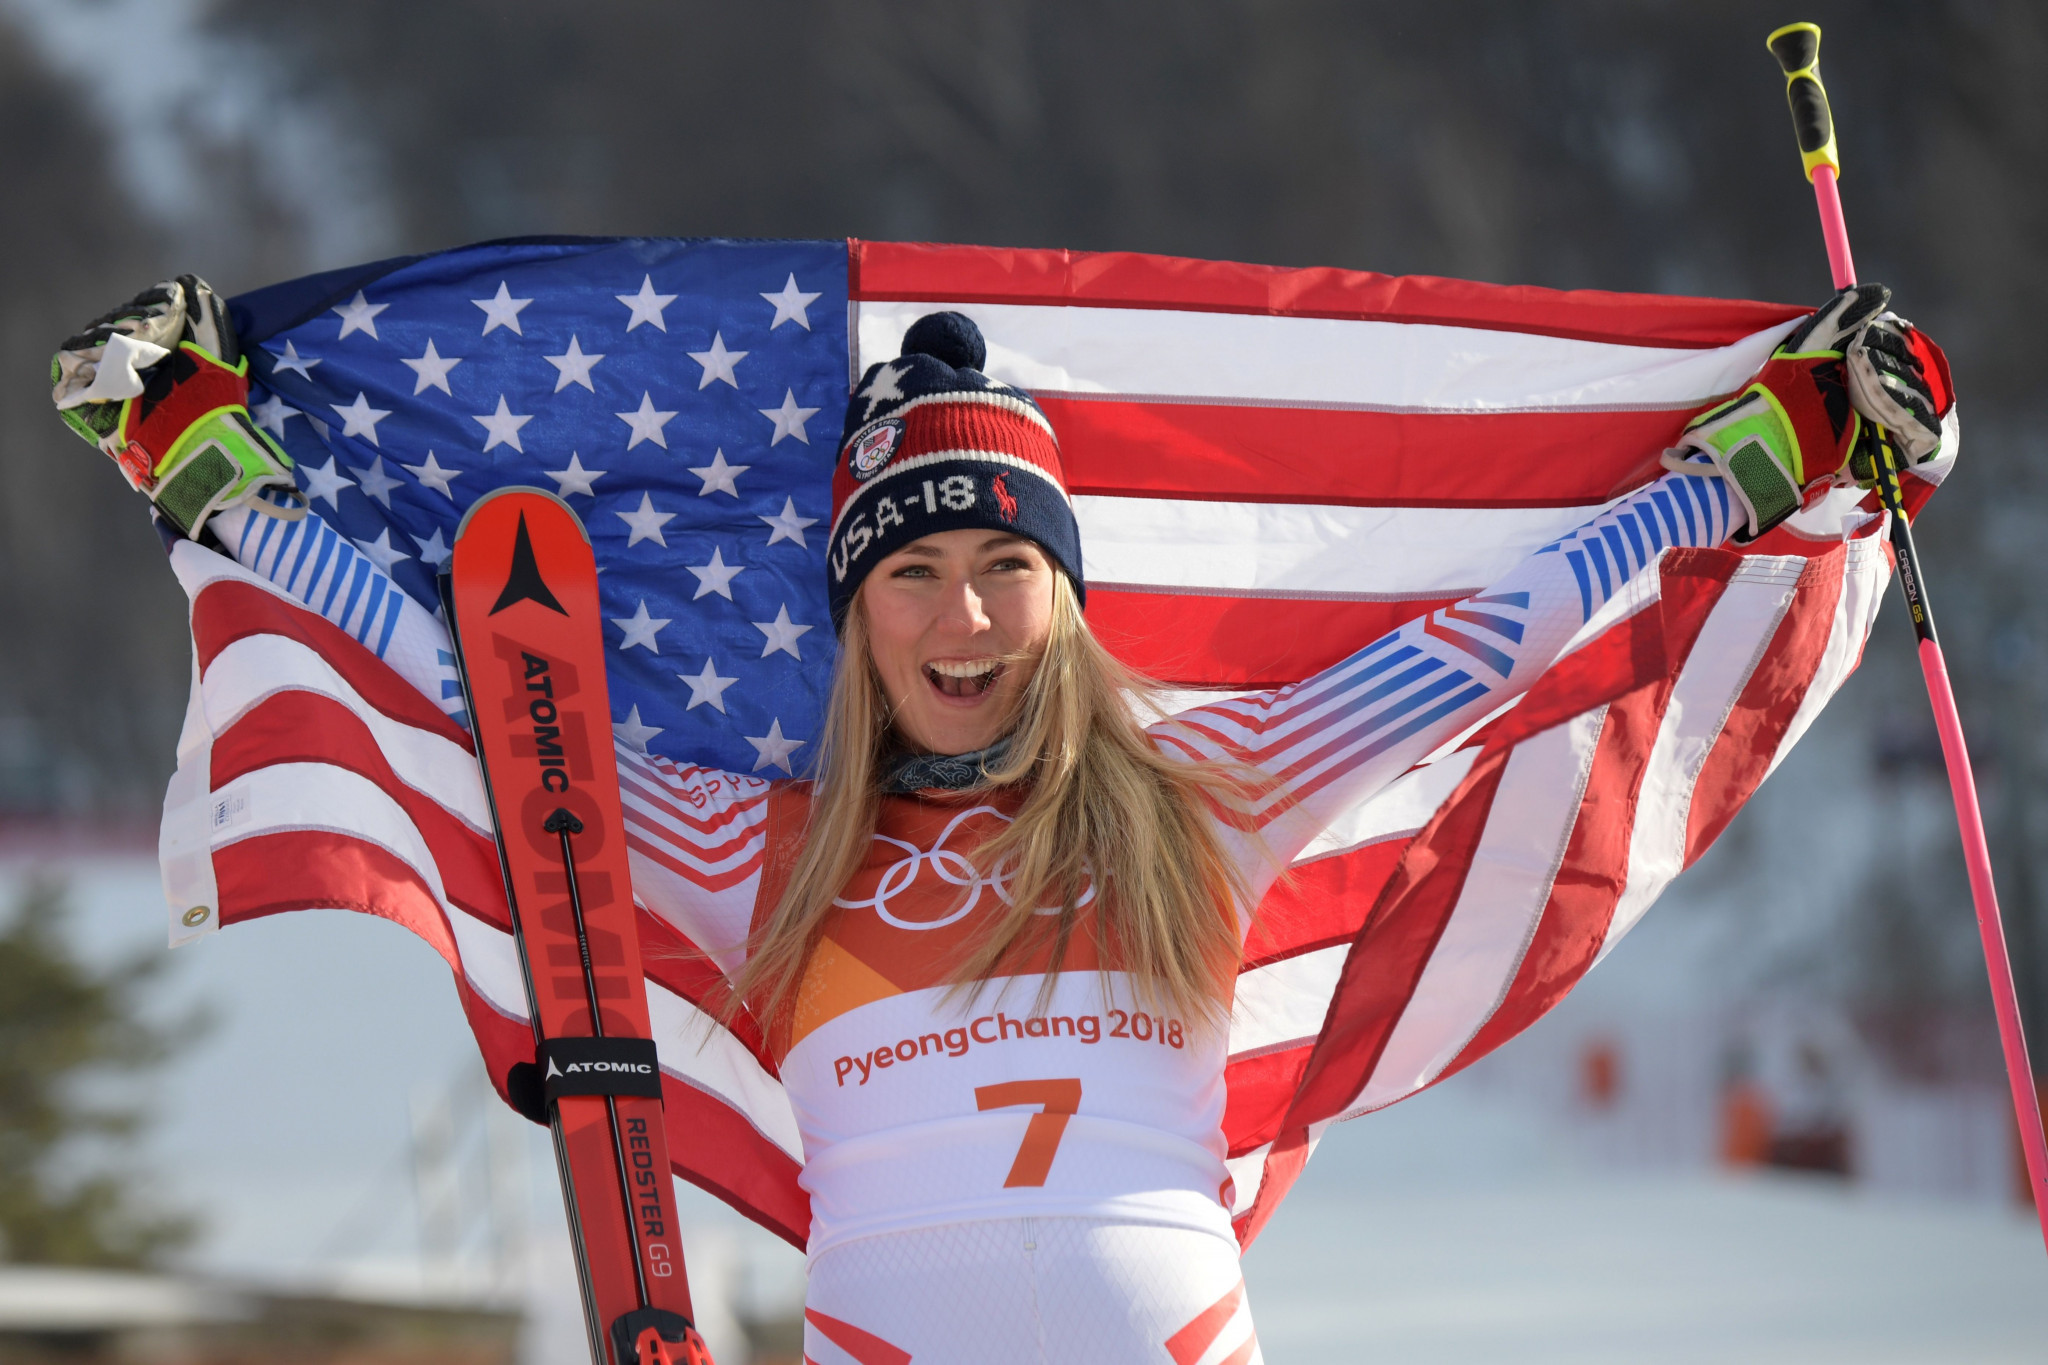 Mikaela Shiffrin Wins Gold Medal at 2018 Winter Olympics